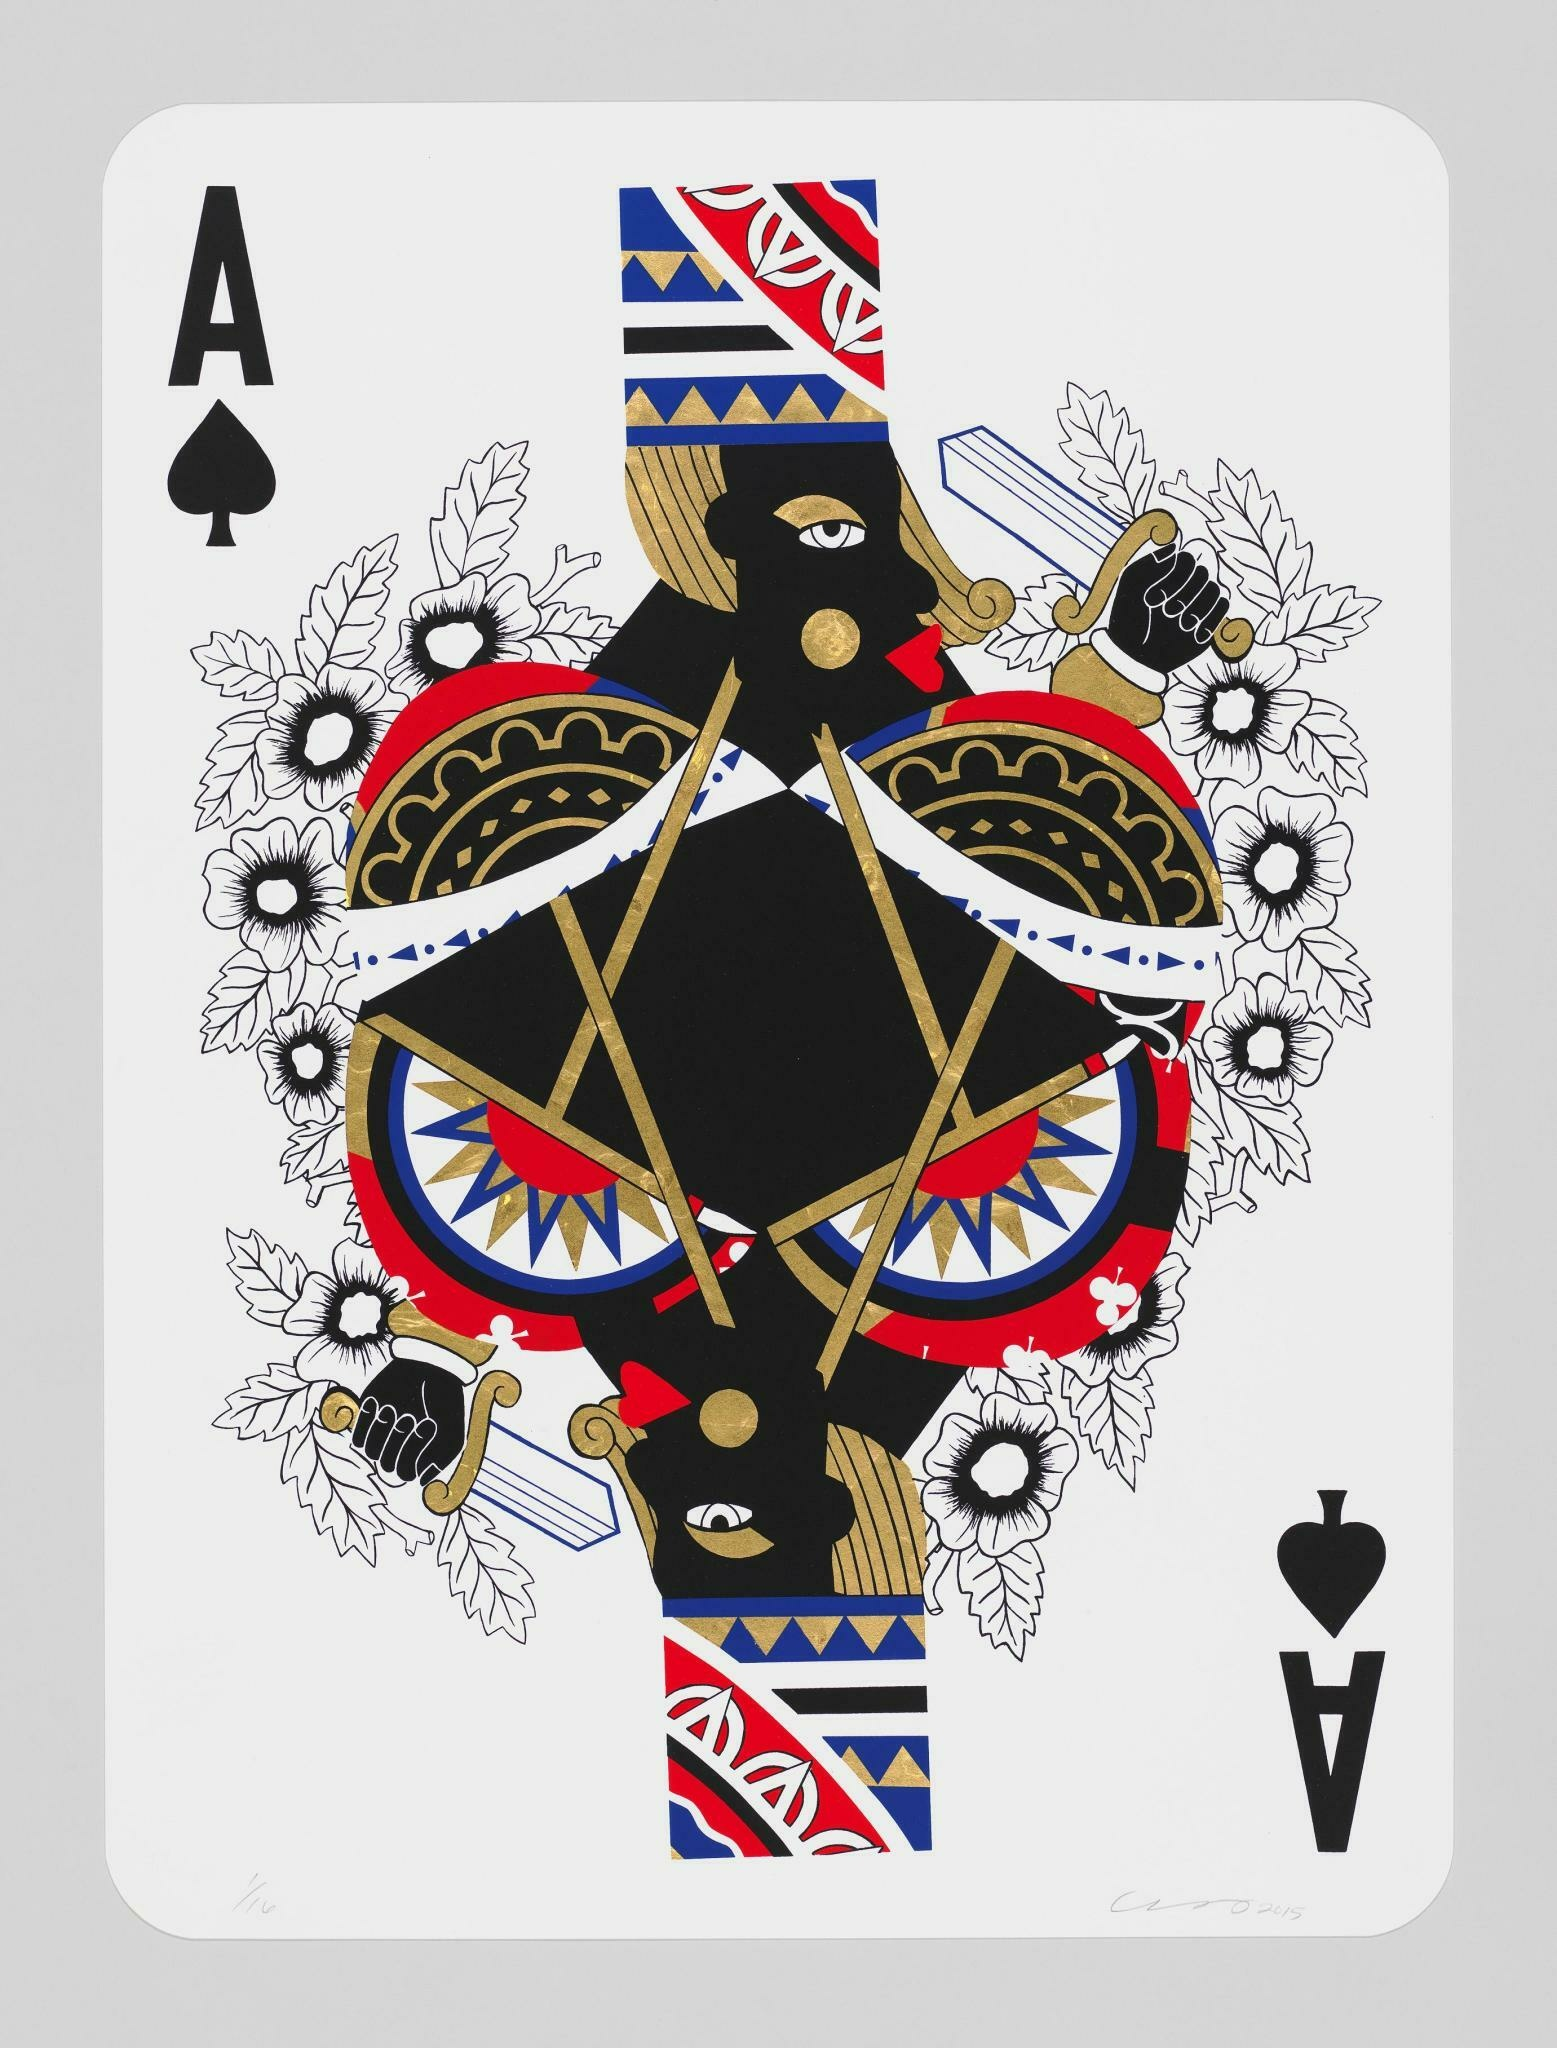 A playing card with a Black figure's mirrored bust at the center. The figure wears a printed cylindrical hat and holds a dagger.